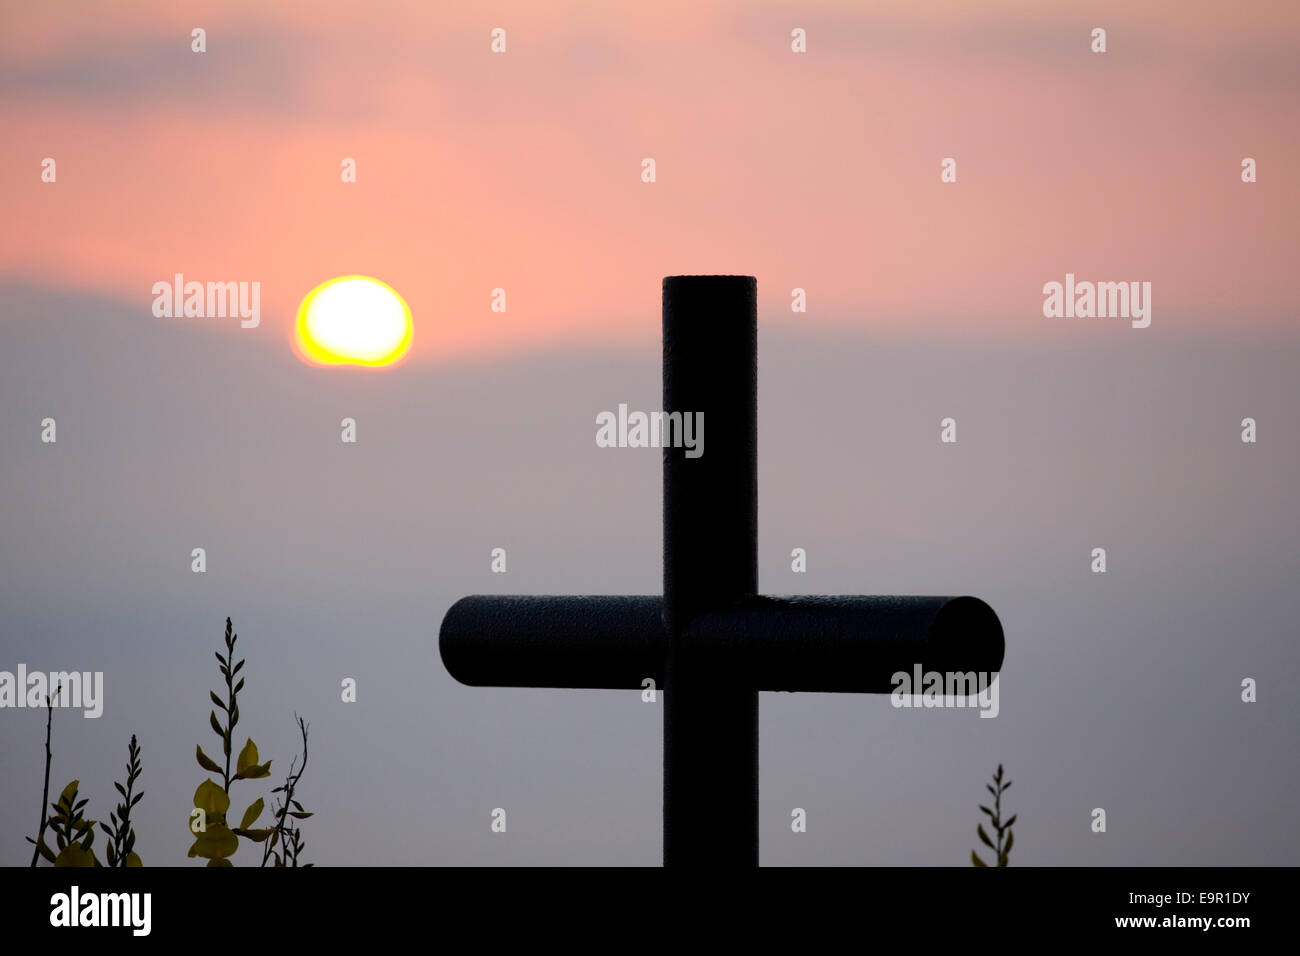 Rocca Ripesena, Umbria, Italy. Clifftop memorial cross silhouetted against the rising sun. - Stock Image